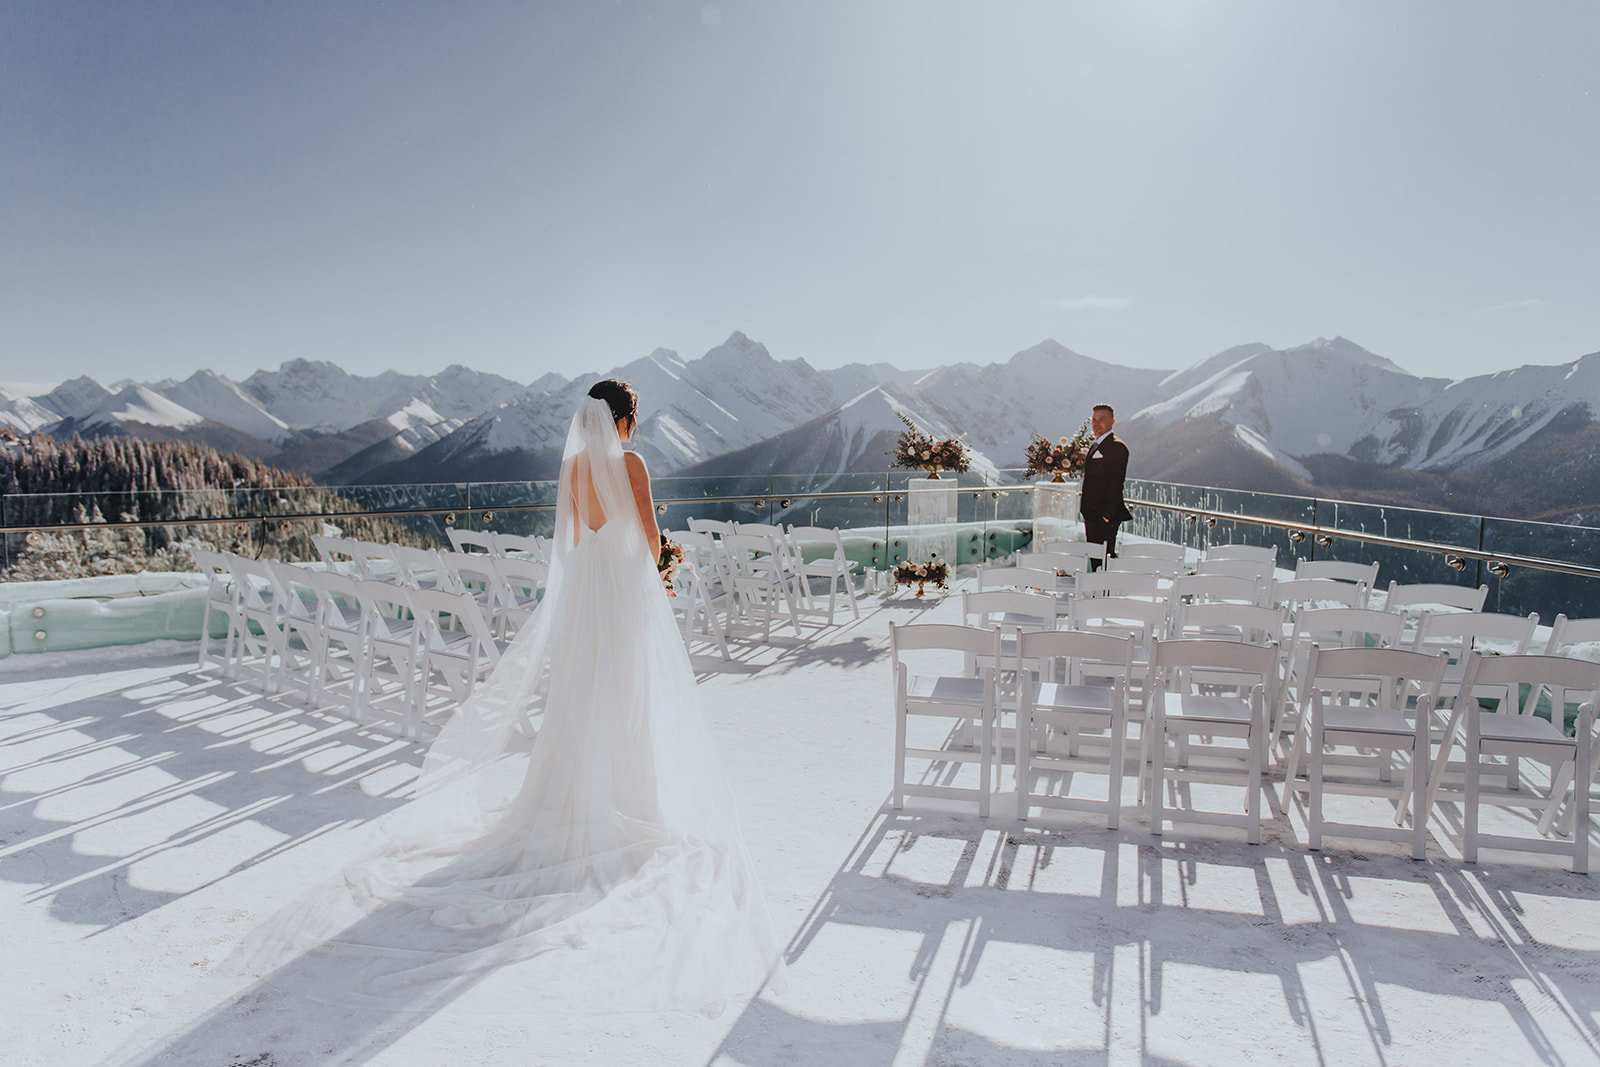 Ceremony at top of Banff Gondola at Sulphur Mountain